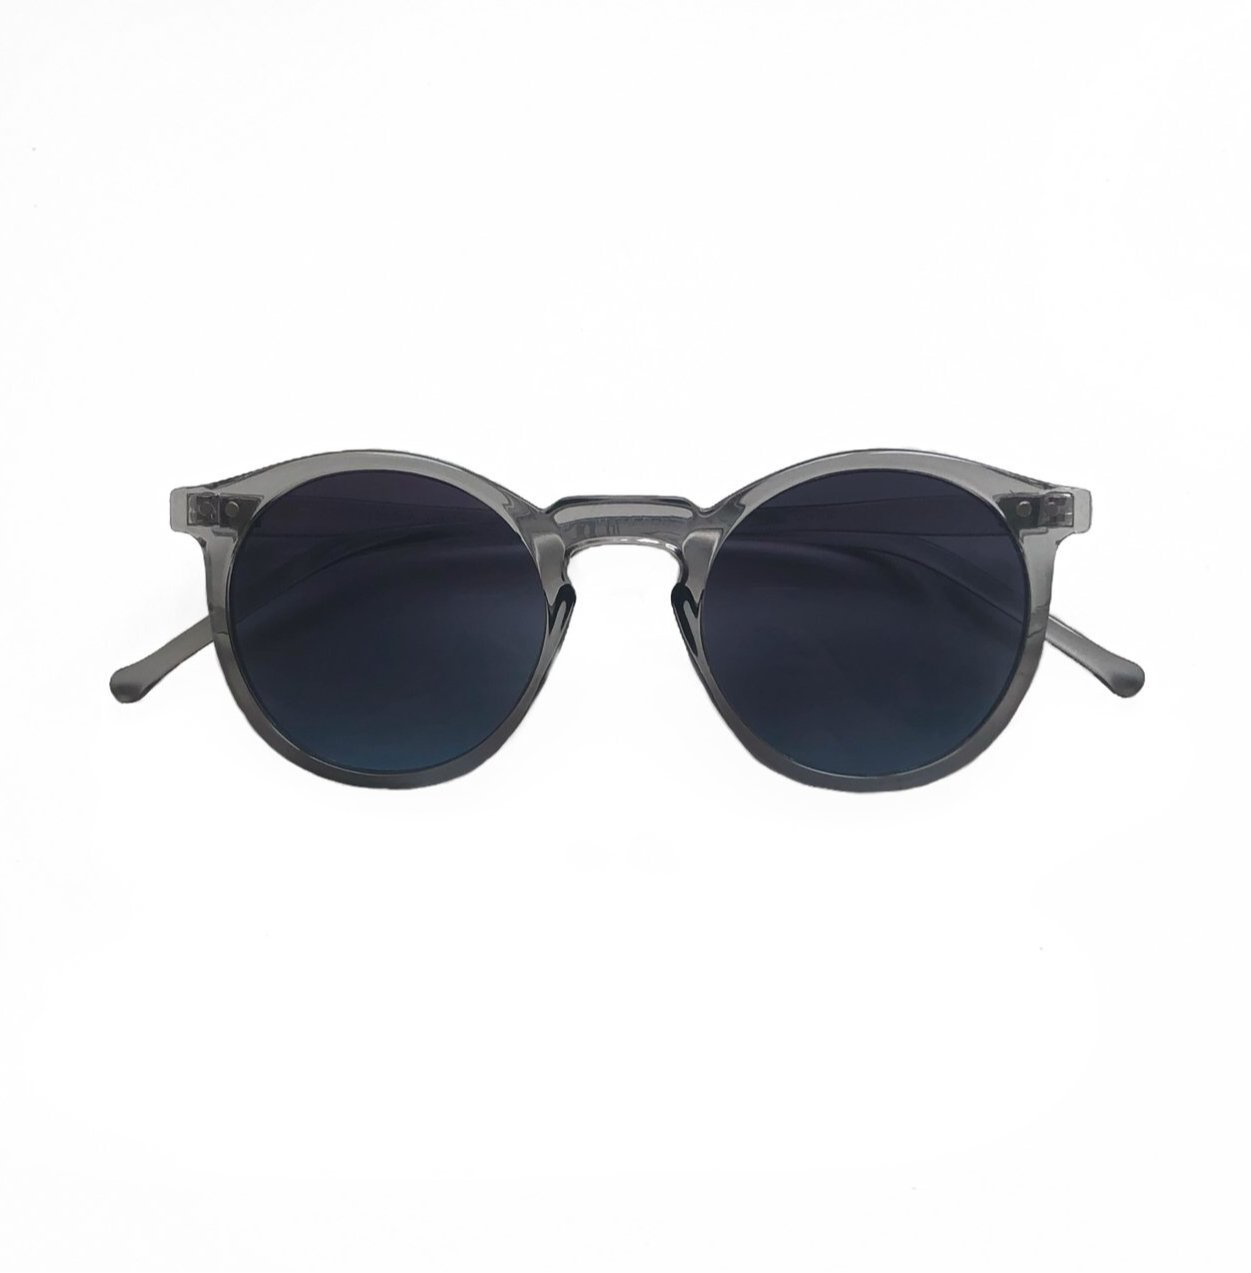 Robin Round Sunglasses - Grey